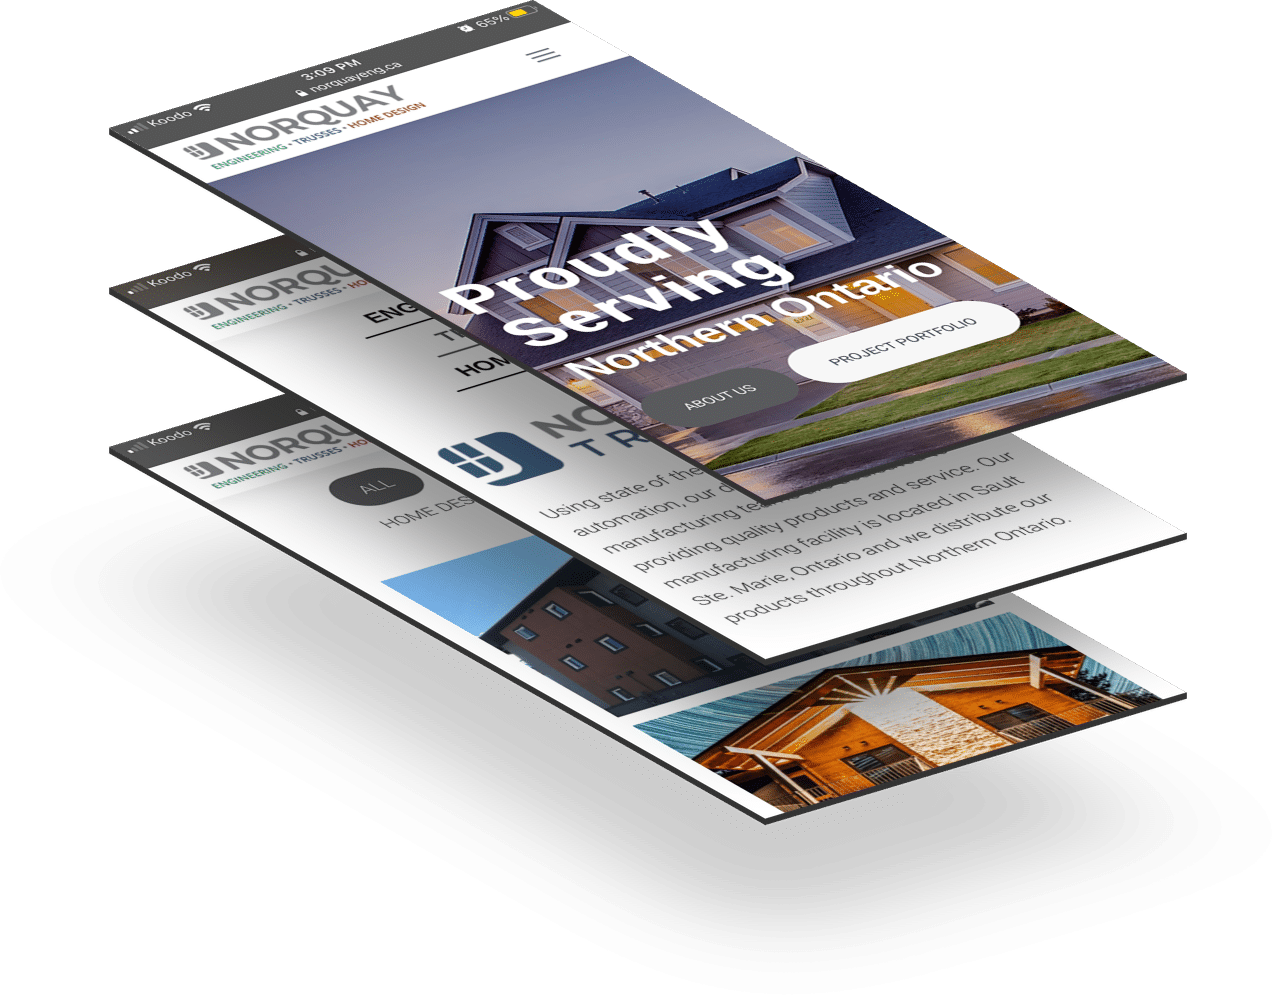 phone screens displaying pages from the Norquay website